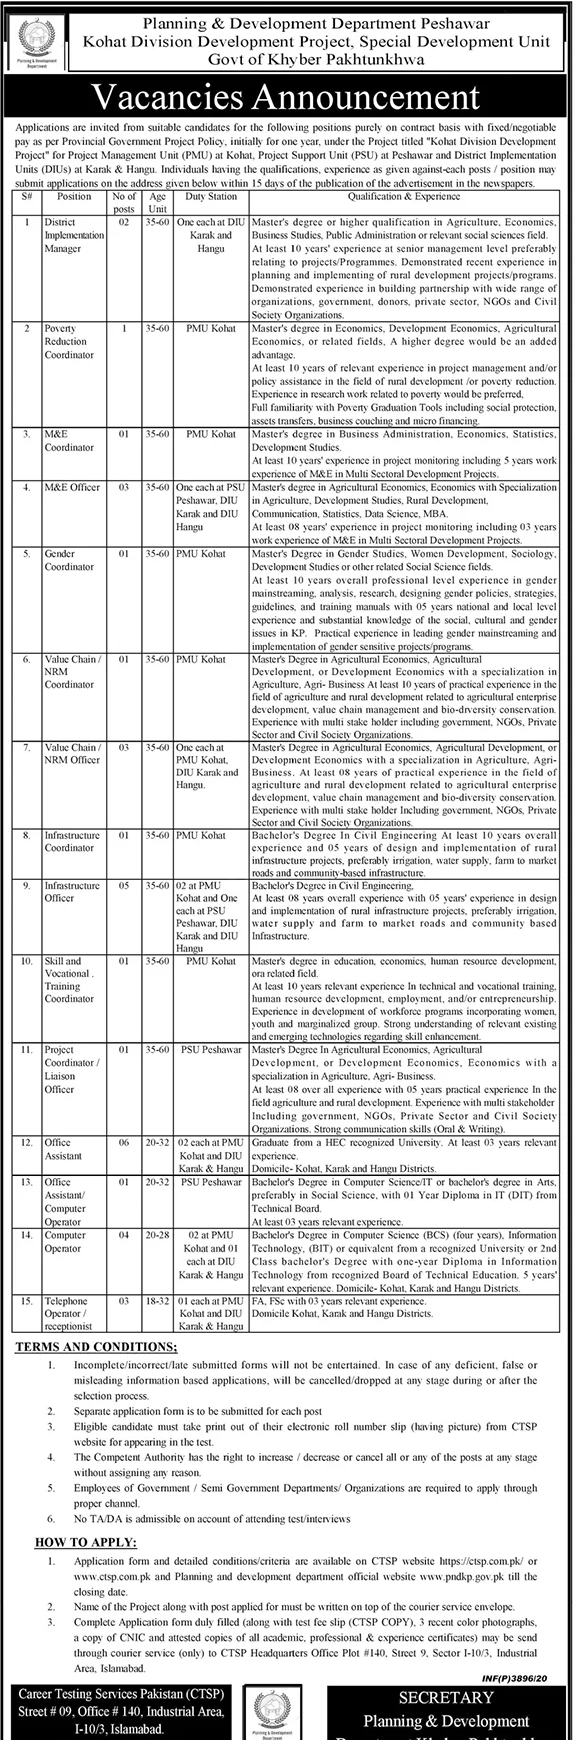 Telephone Operator Job in Planning & Development Department Peshawar Government of KPK in Islamabad for DIU Hangu Candidates -2020